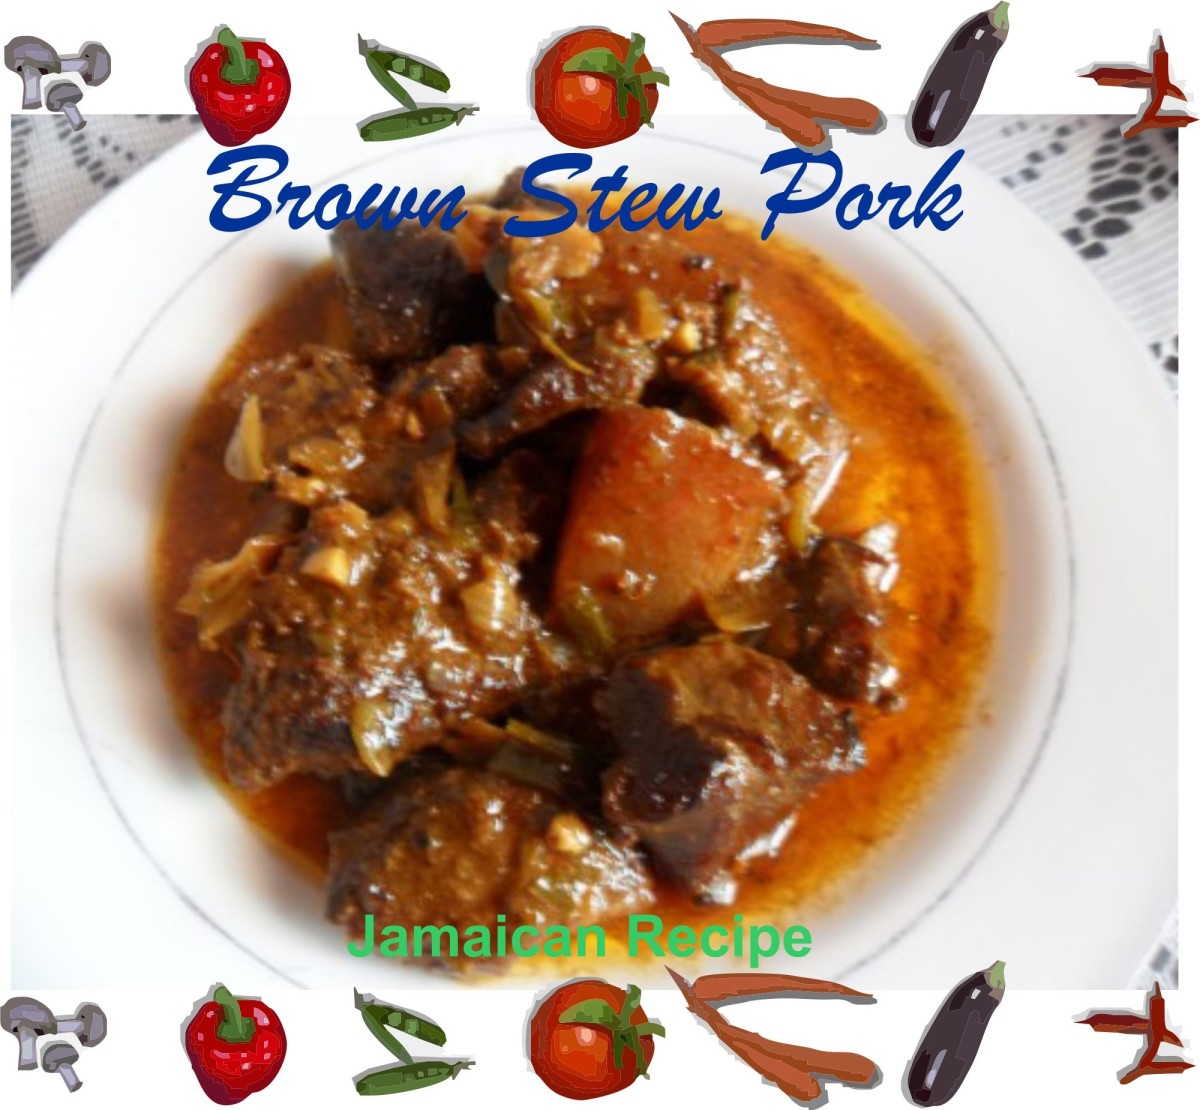 Best Recipe for Jamaican Stew Pork